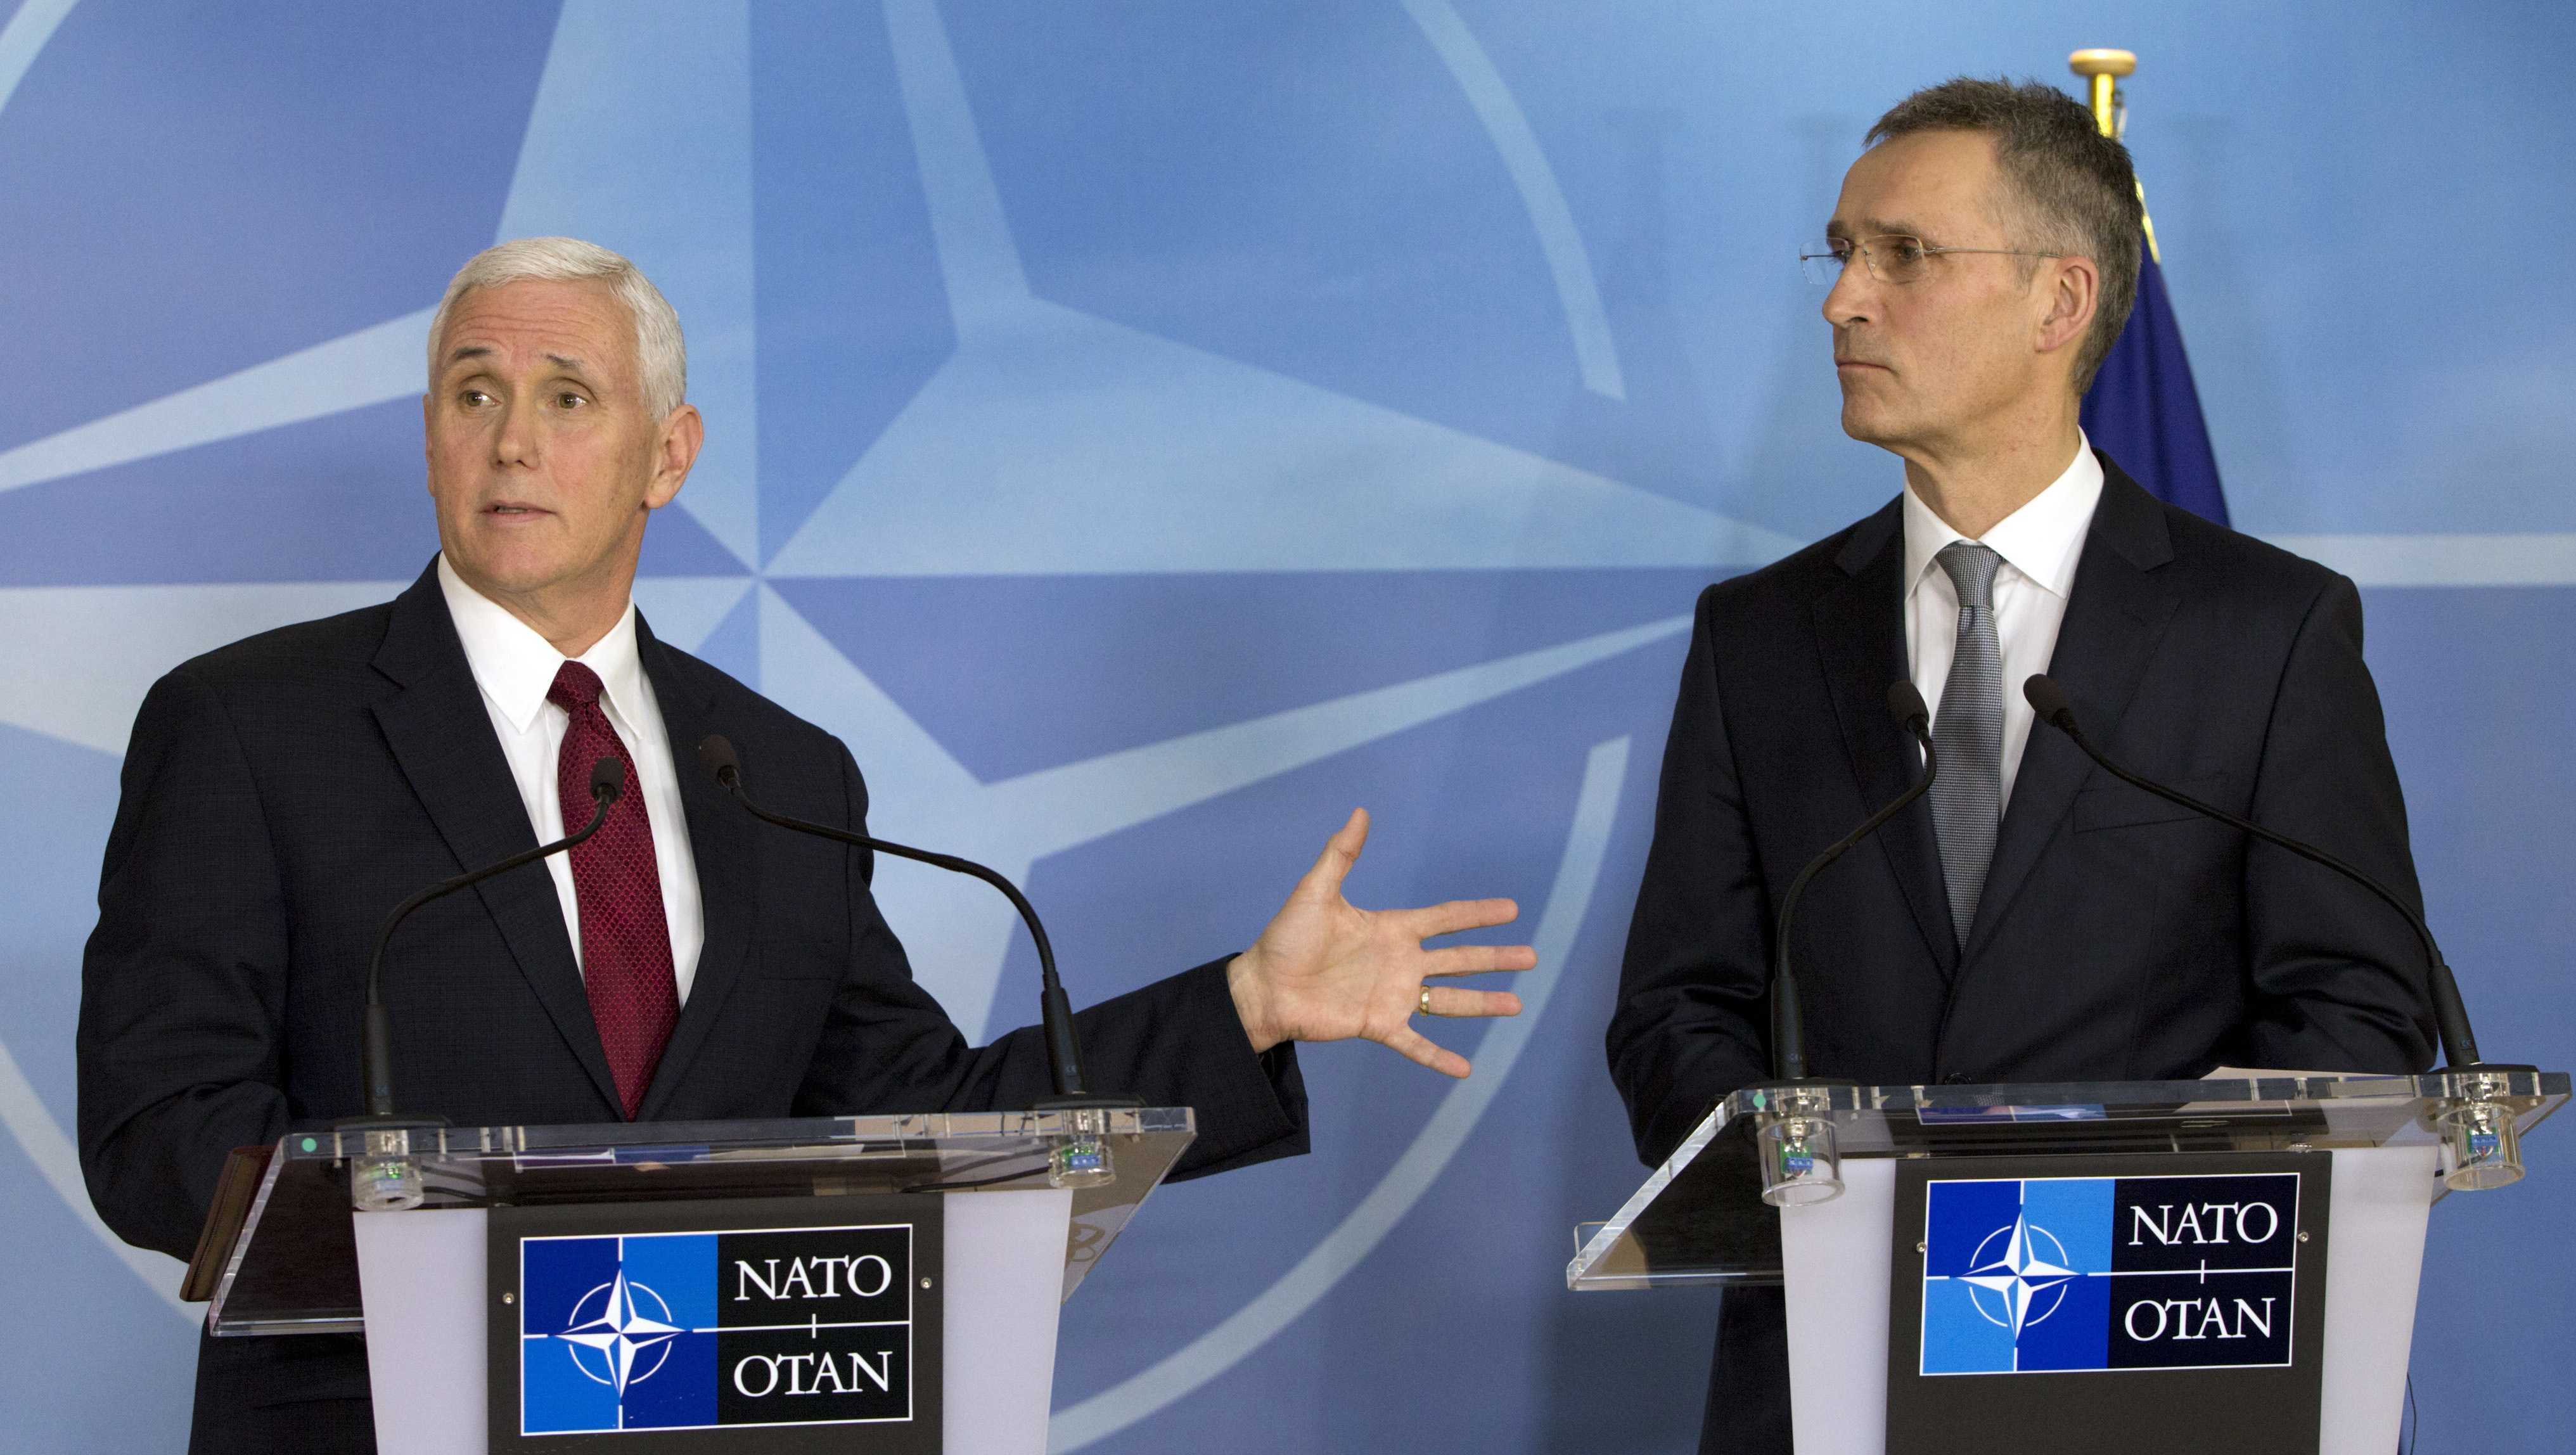 United States Vice President Mike Pence, left, and NATO Secretary General Jens Stoltenberg address a media conference at NATO headquarters in Brussels on Monday, Feb. 20, 2017.